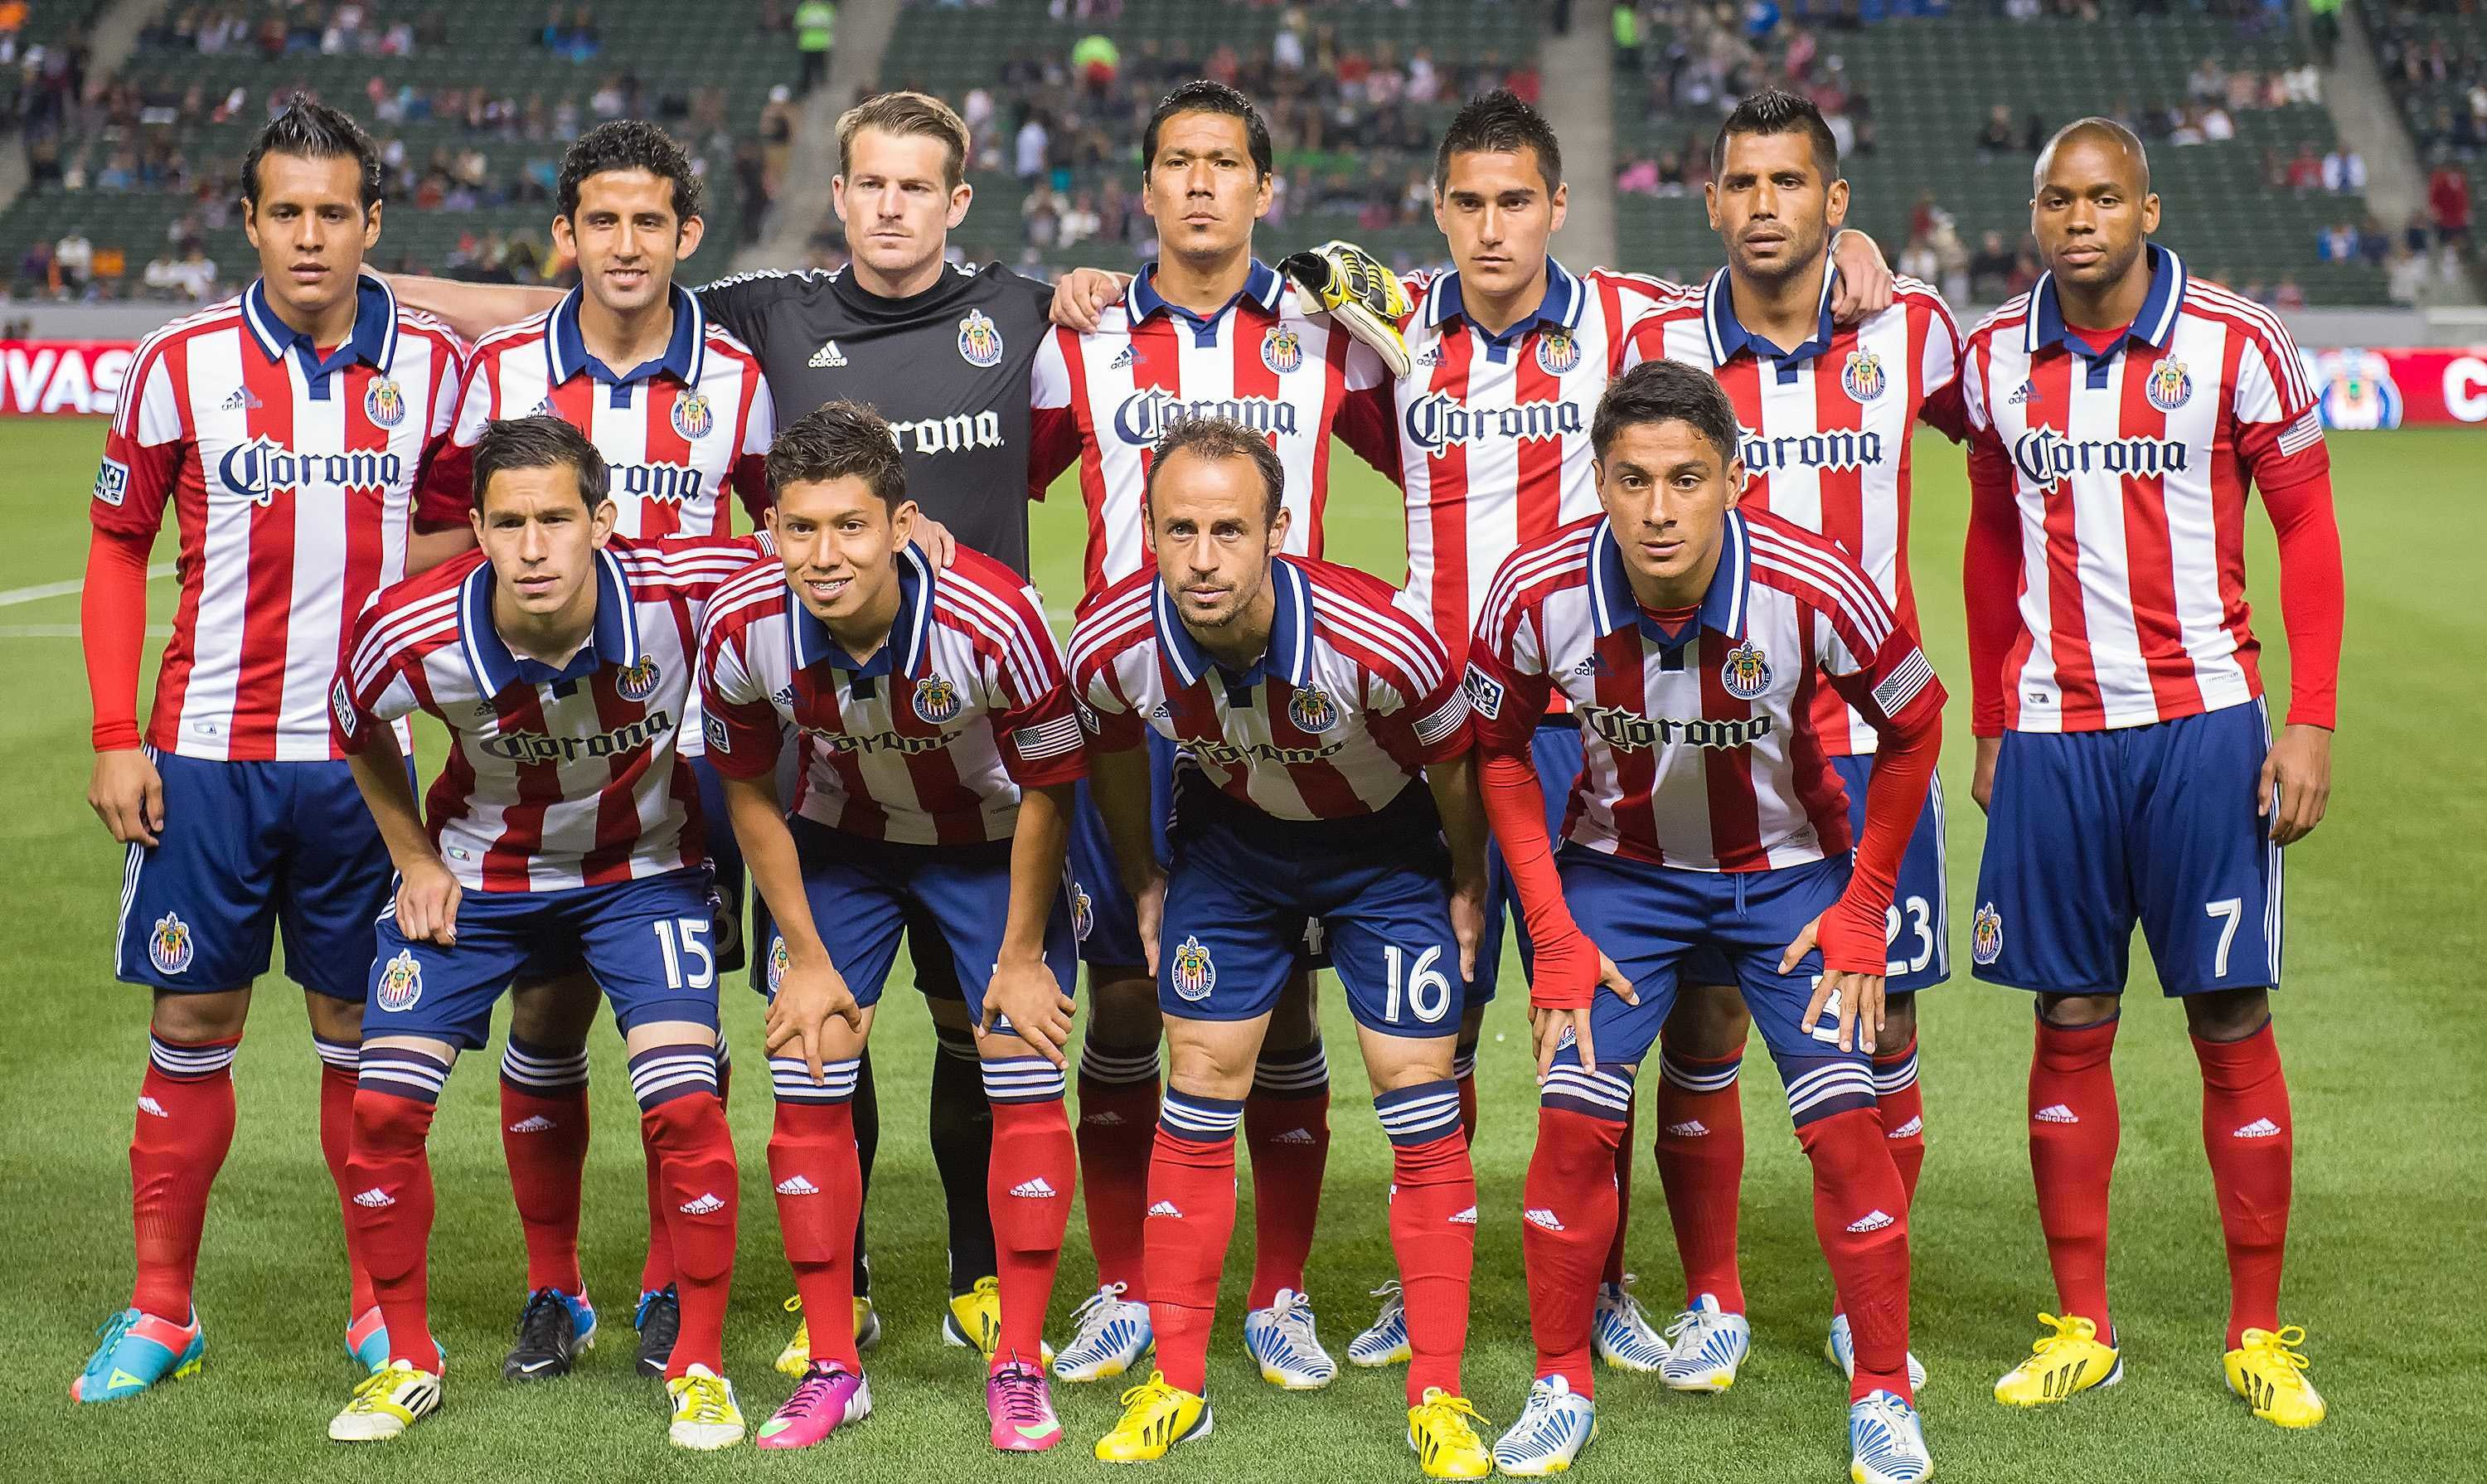 """Chivas USA Faces Media Mess After HBO's """"Real Sports"""" Reports  Discrimination Allegations"""